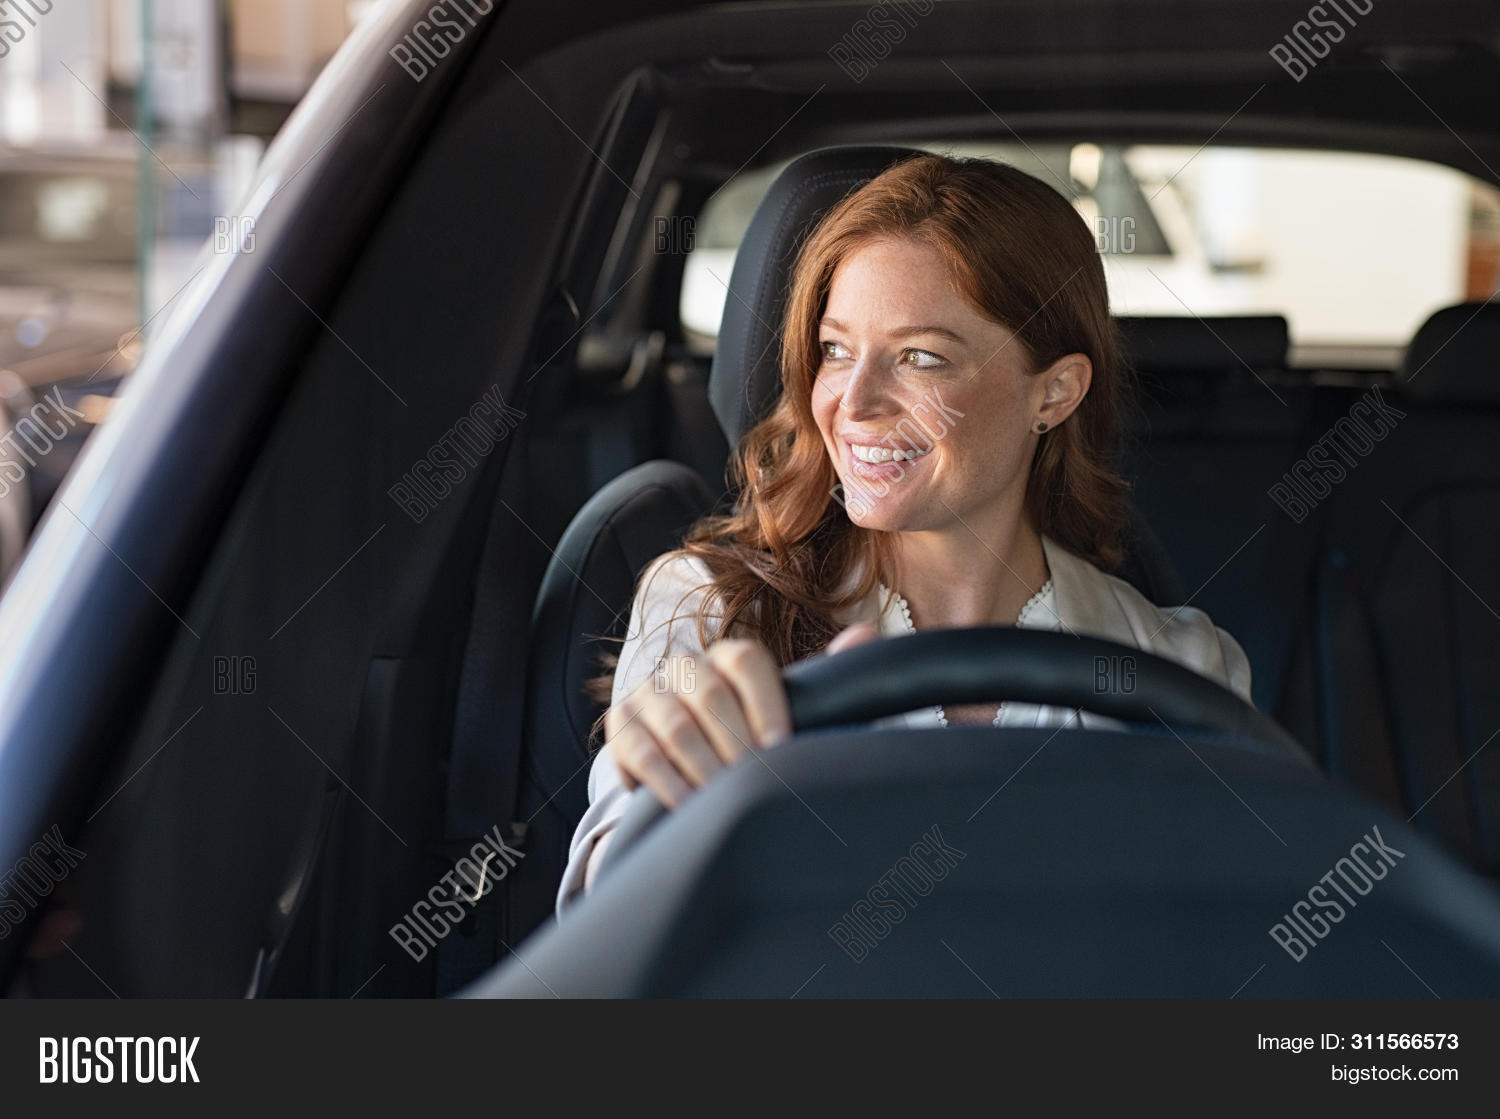 attractive,auto,automobile,beautiful,beautiful woman,businesswoman,buy,car,cheerful,client,customer,daydream,daydreaming,dealership,dream,drive,drive test,driver,girl,hands on steering wheel,hands on wheel,happy,insurance,interior,looking away,looking out window,mature,mid adult woman,middle aged woman,new,new car,pensive woman,people,protection,purchase,rental,selling,service,showroom,sitting,smile,thinking,toothy smile,transport,transportation,travel,vehicle,wheel,window car,young